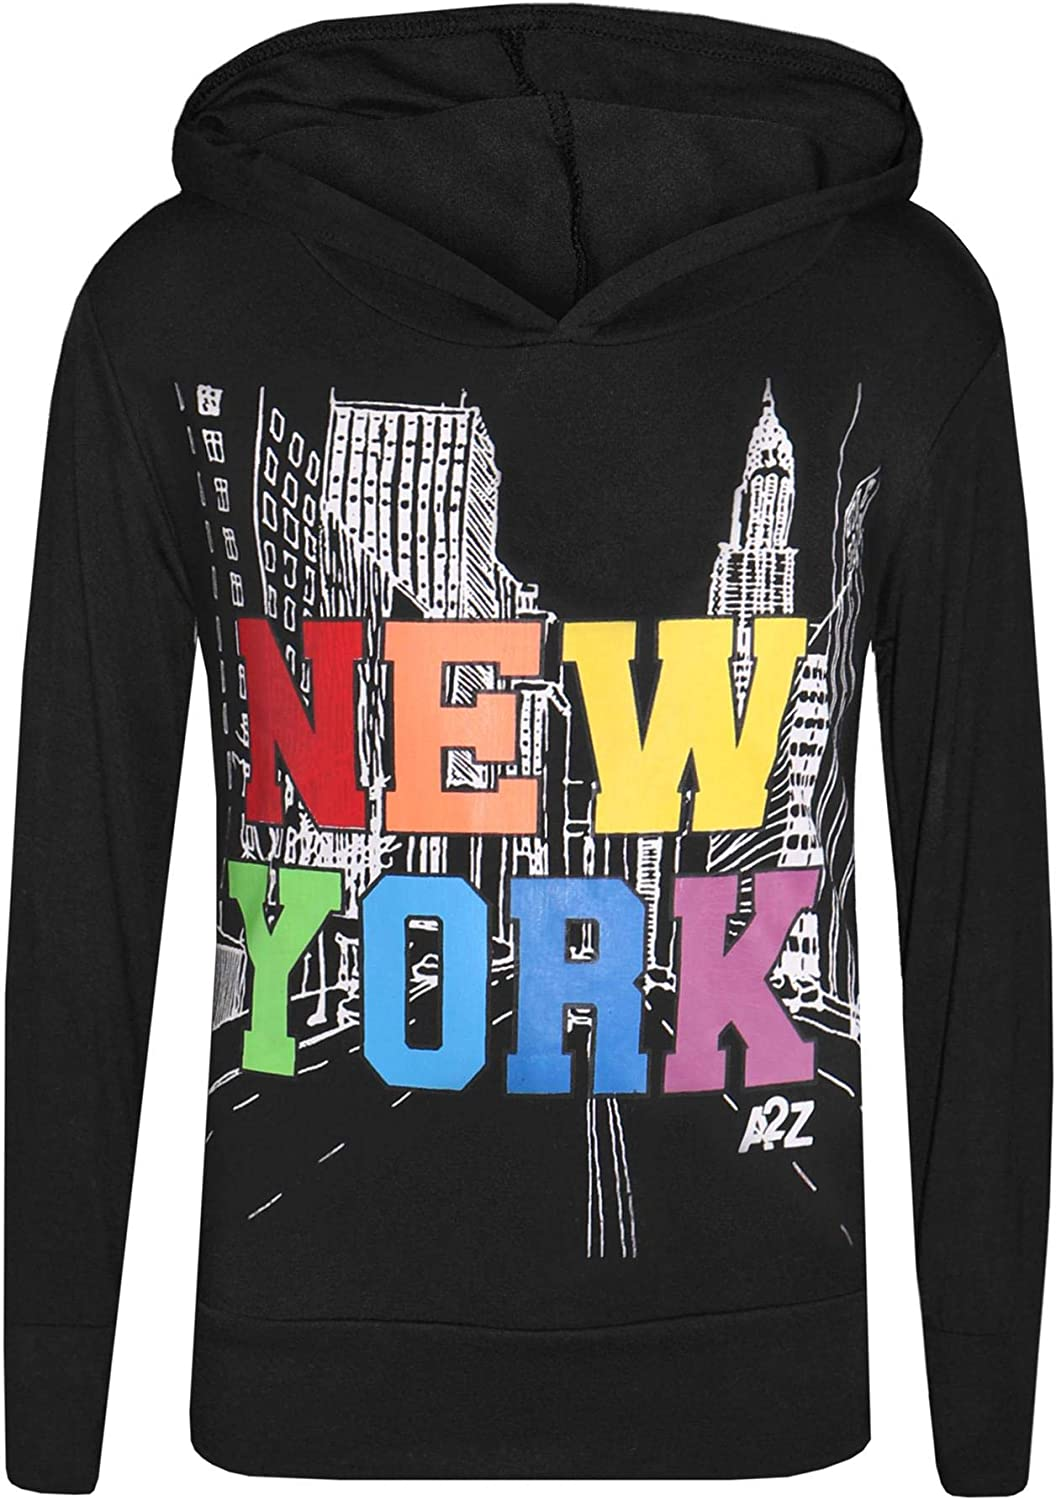 A2Z 4 Kids Girls Hooded Crop /& Bottom 2 Piece New York Print Trendy Crop Top Tees /& Fashion Legging Outfit Clothing Sets New Age 2 3 4 5 6 7 8 9 10 11 12 13 Years